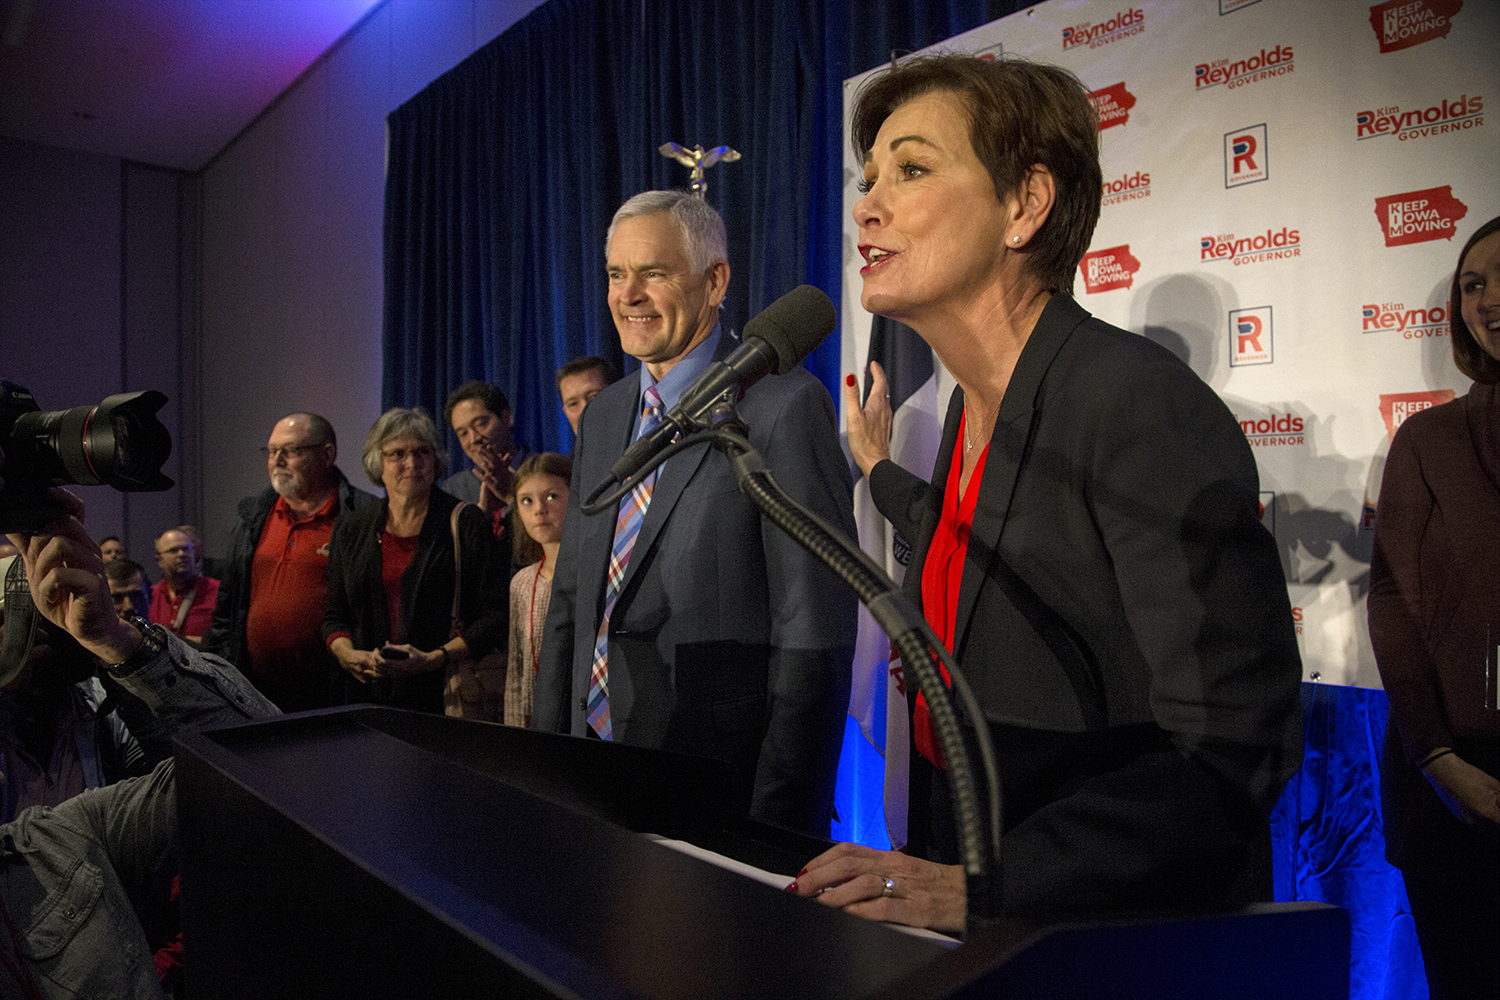 Re-elected Governor Kim Reynolds addresses her supporters at the Hilton in Des Moines on Wednesday, November 7, 2018. Reynolds defeated her opponent, Democratic candidate Fred Hubbell 50.19% to 47.61% with 92 counties reporting in an unofficial total.